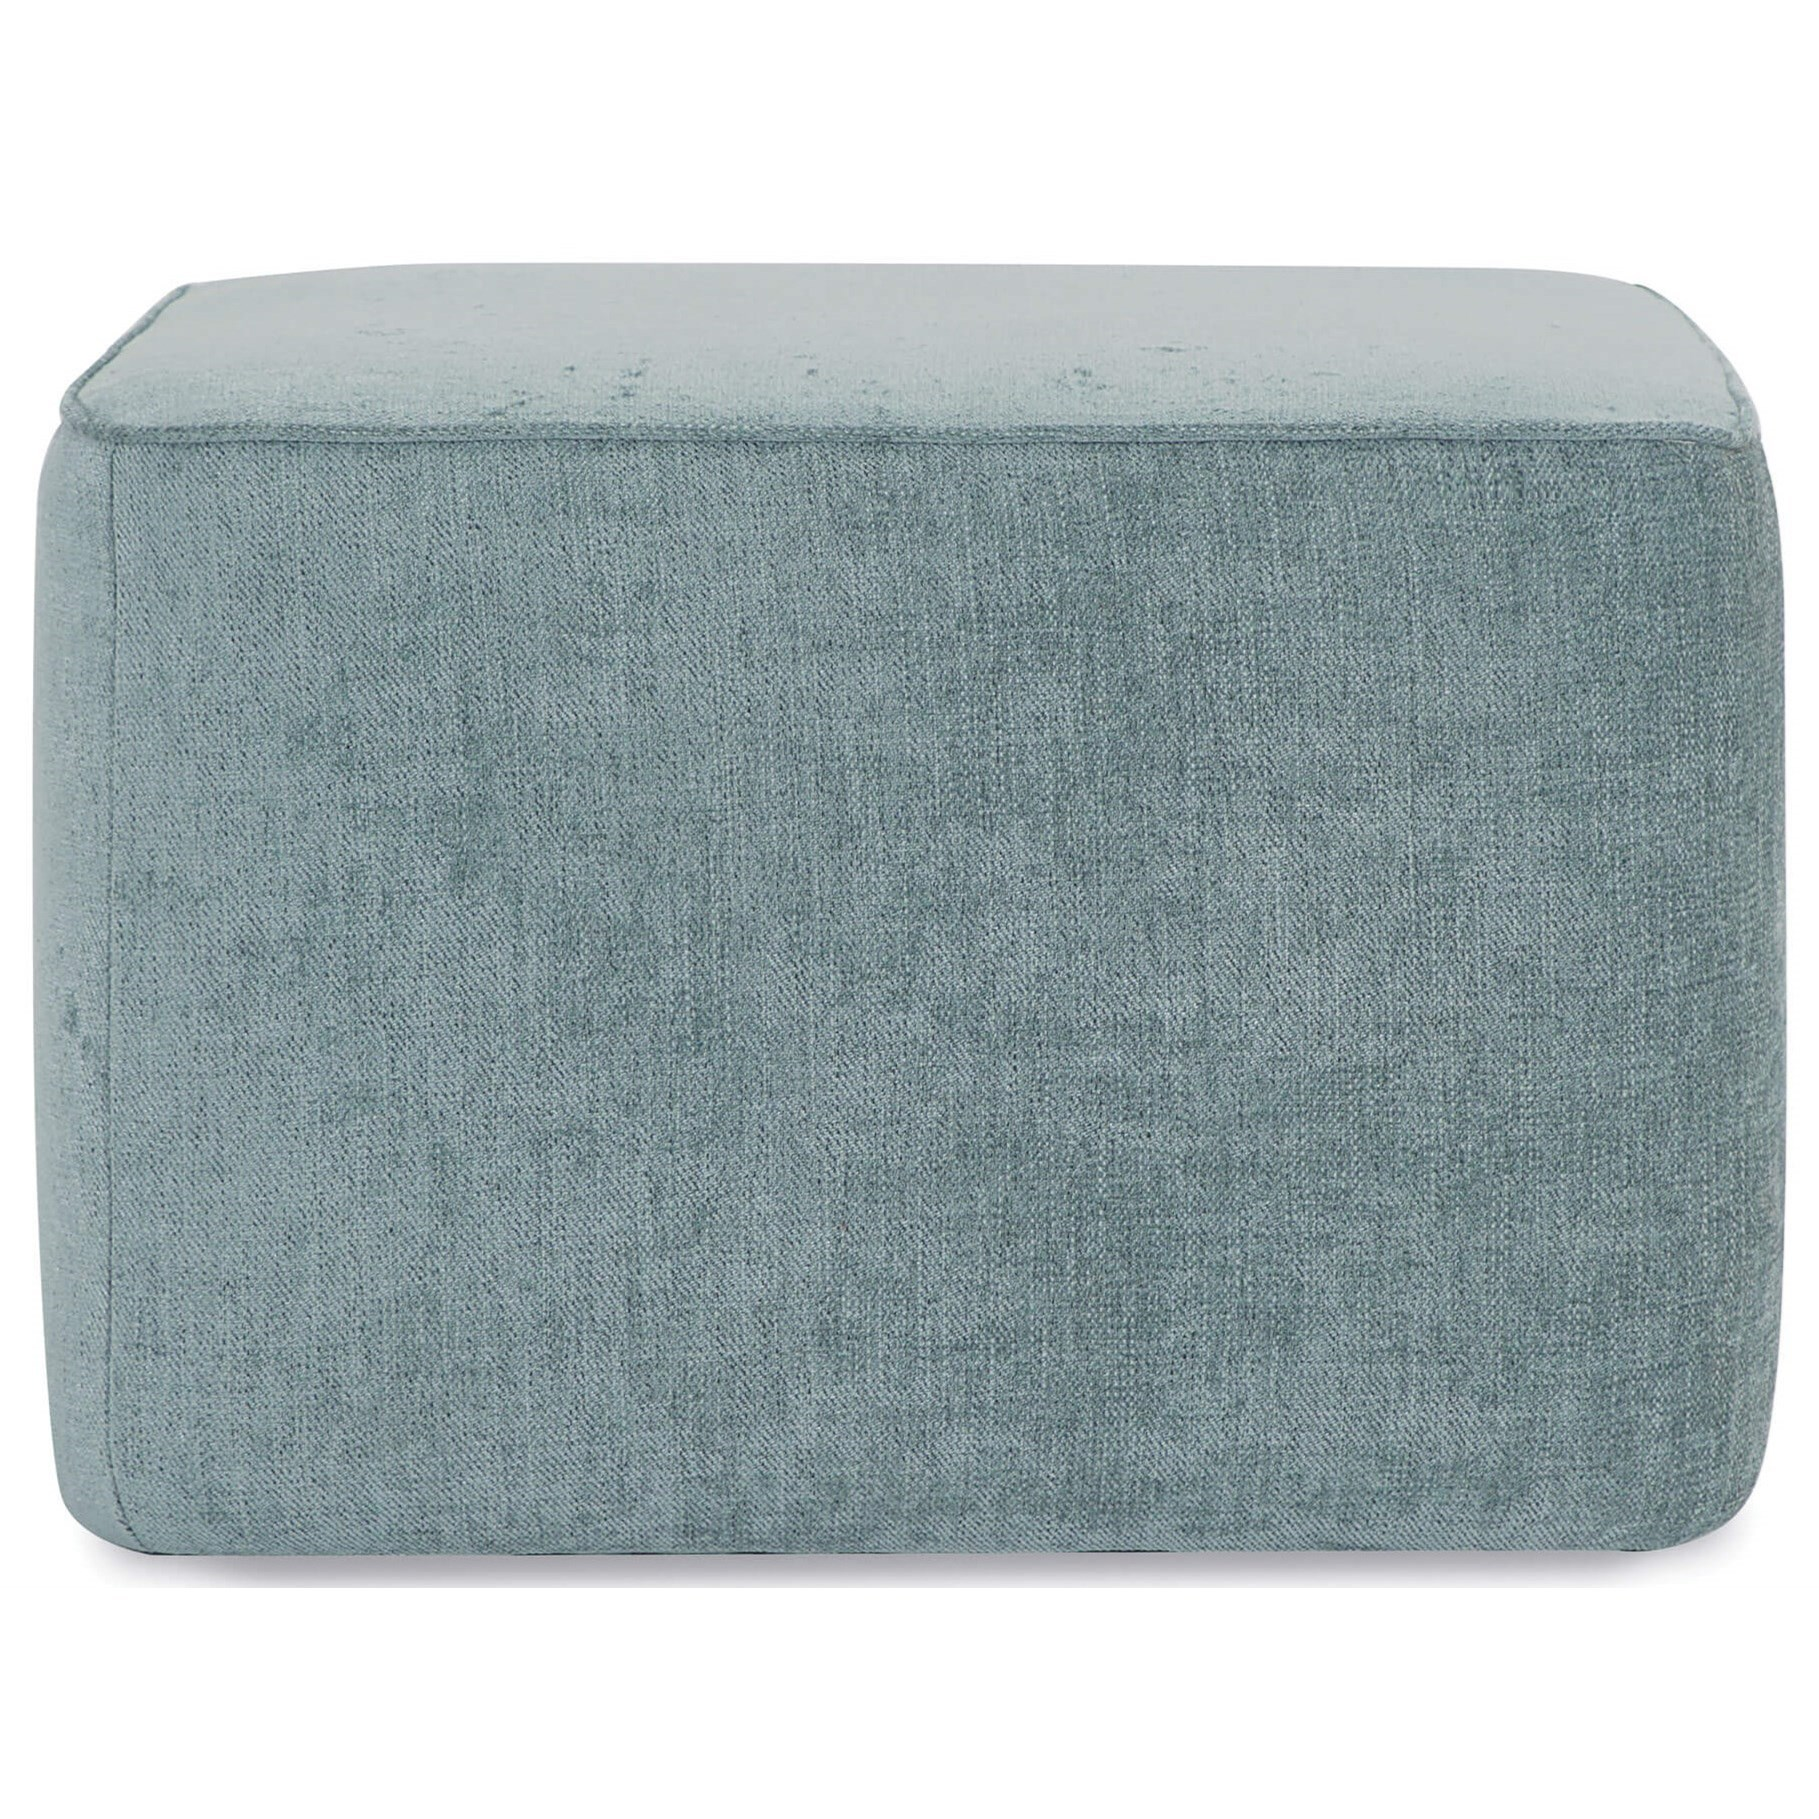 Courtyard Square Cocktail Ottoman  by Palliser at Jordan's Home Furnishings